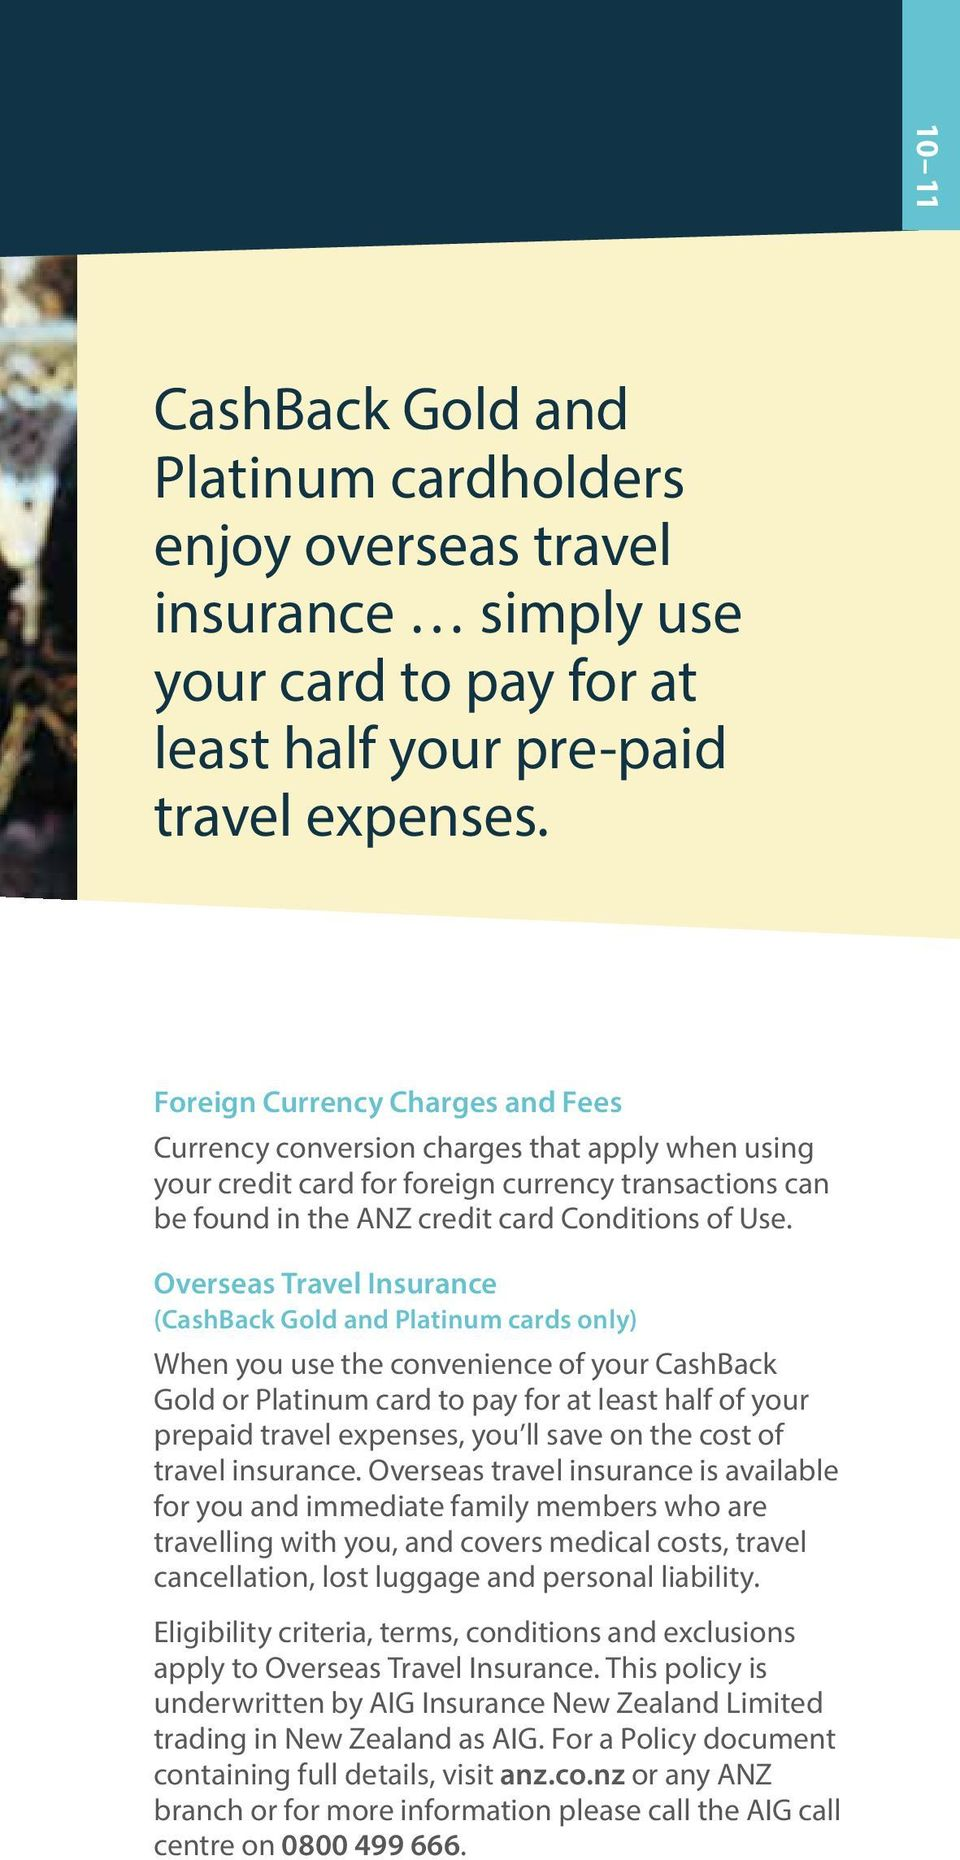 Overseas Travel Insurance (CashBack Gold and Platinum cards only) When you use the convenience of your CashBack Gold or Platinum card to pay for at least half of your prepaid travel expenses, you ll